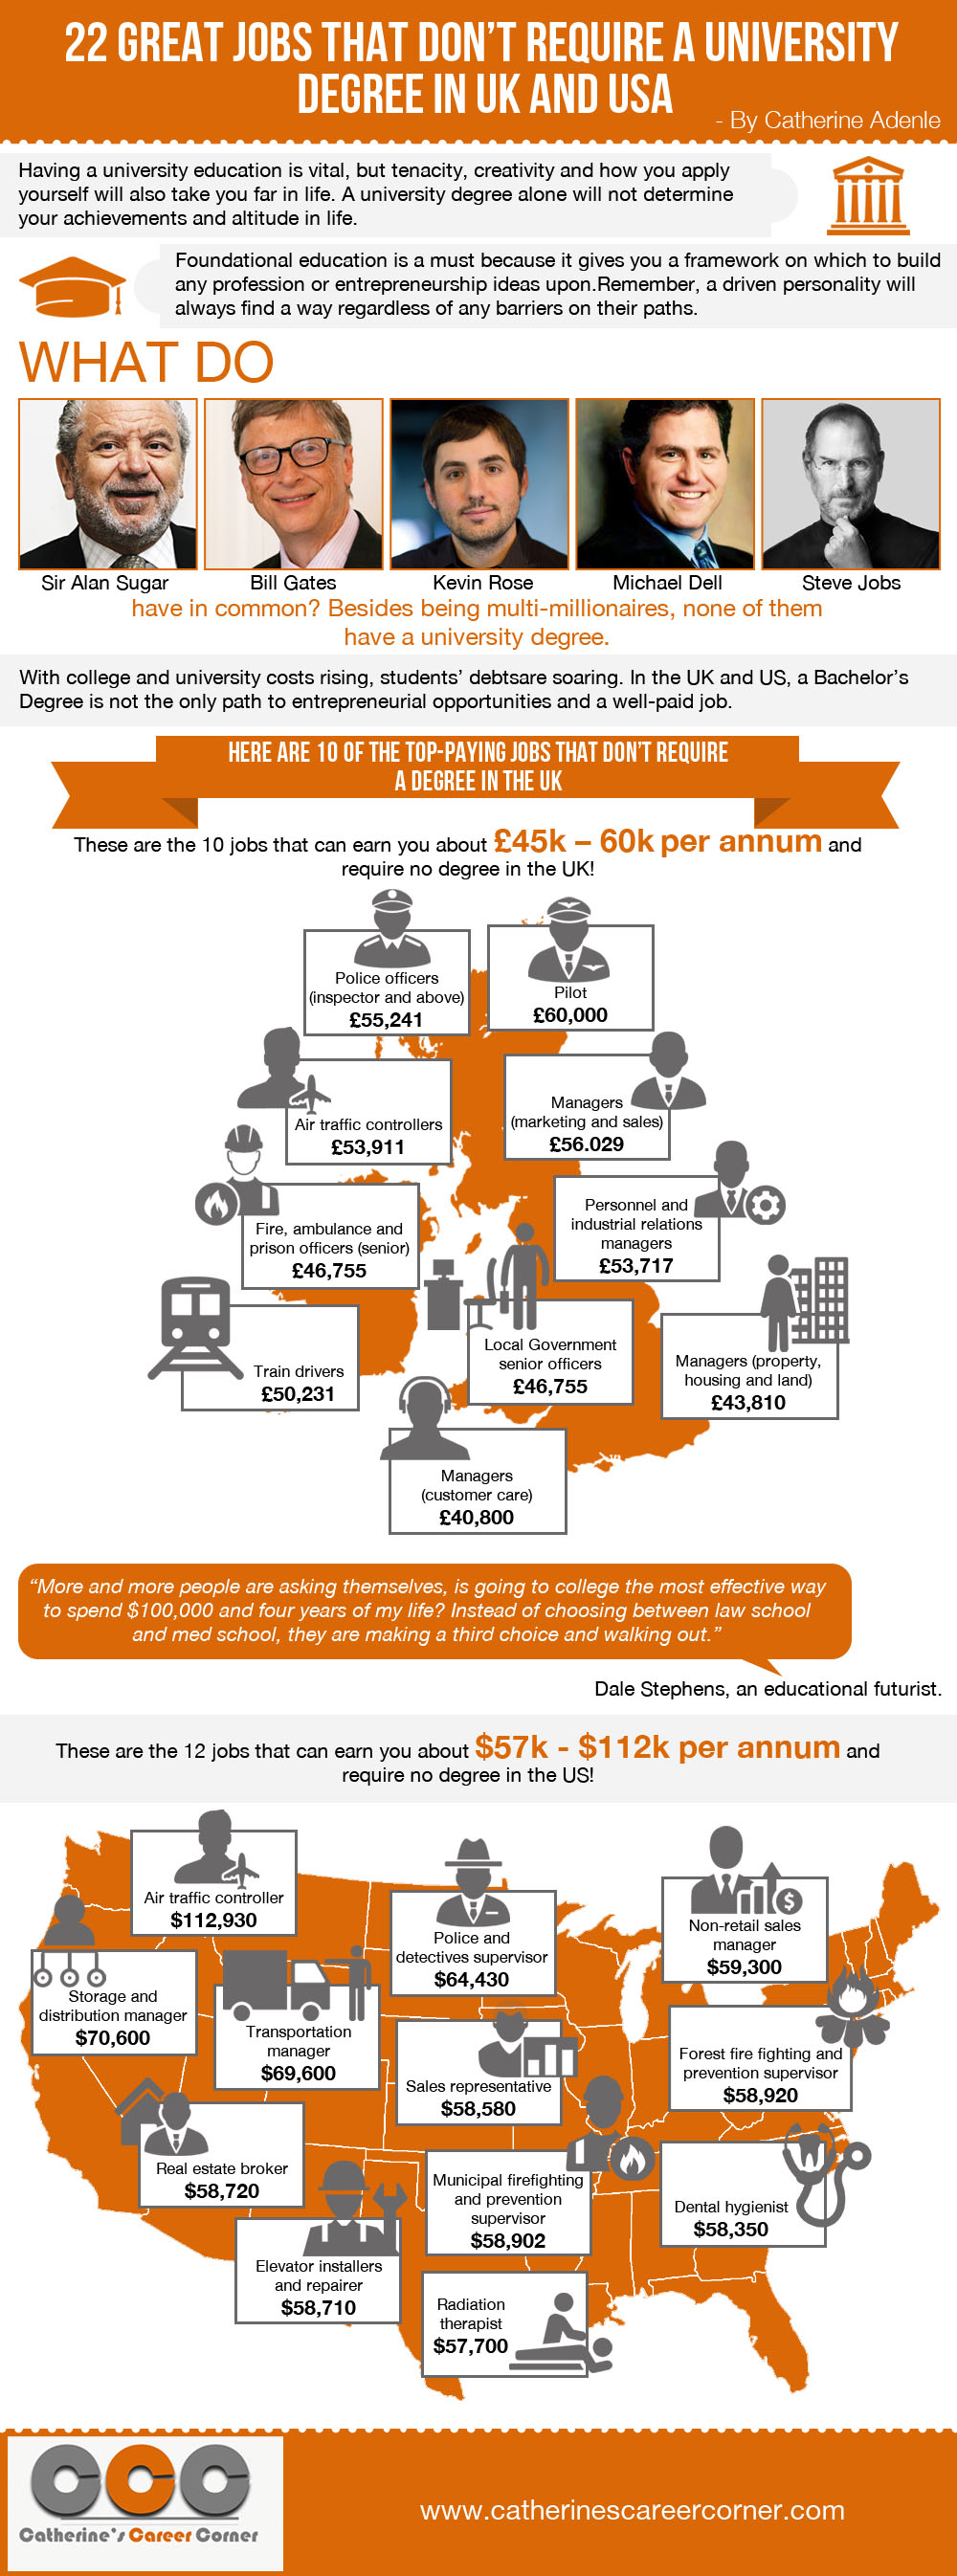 22 Well-Paid Jobs Require No University Degree in UK and US (Infographic)